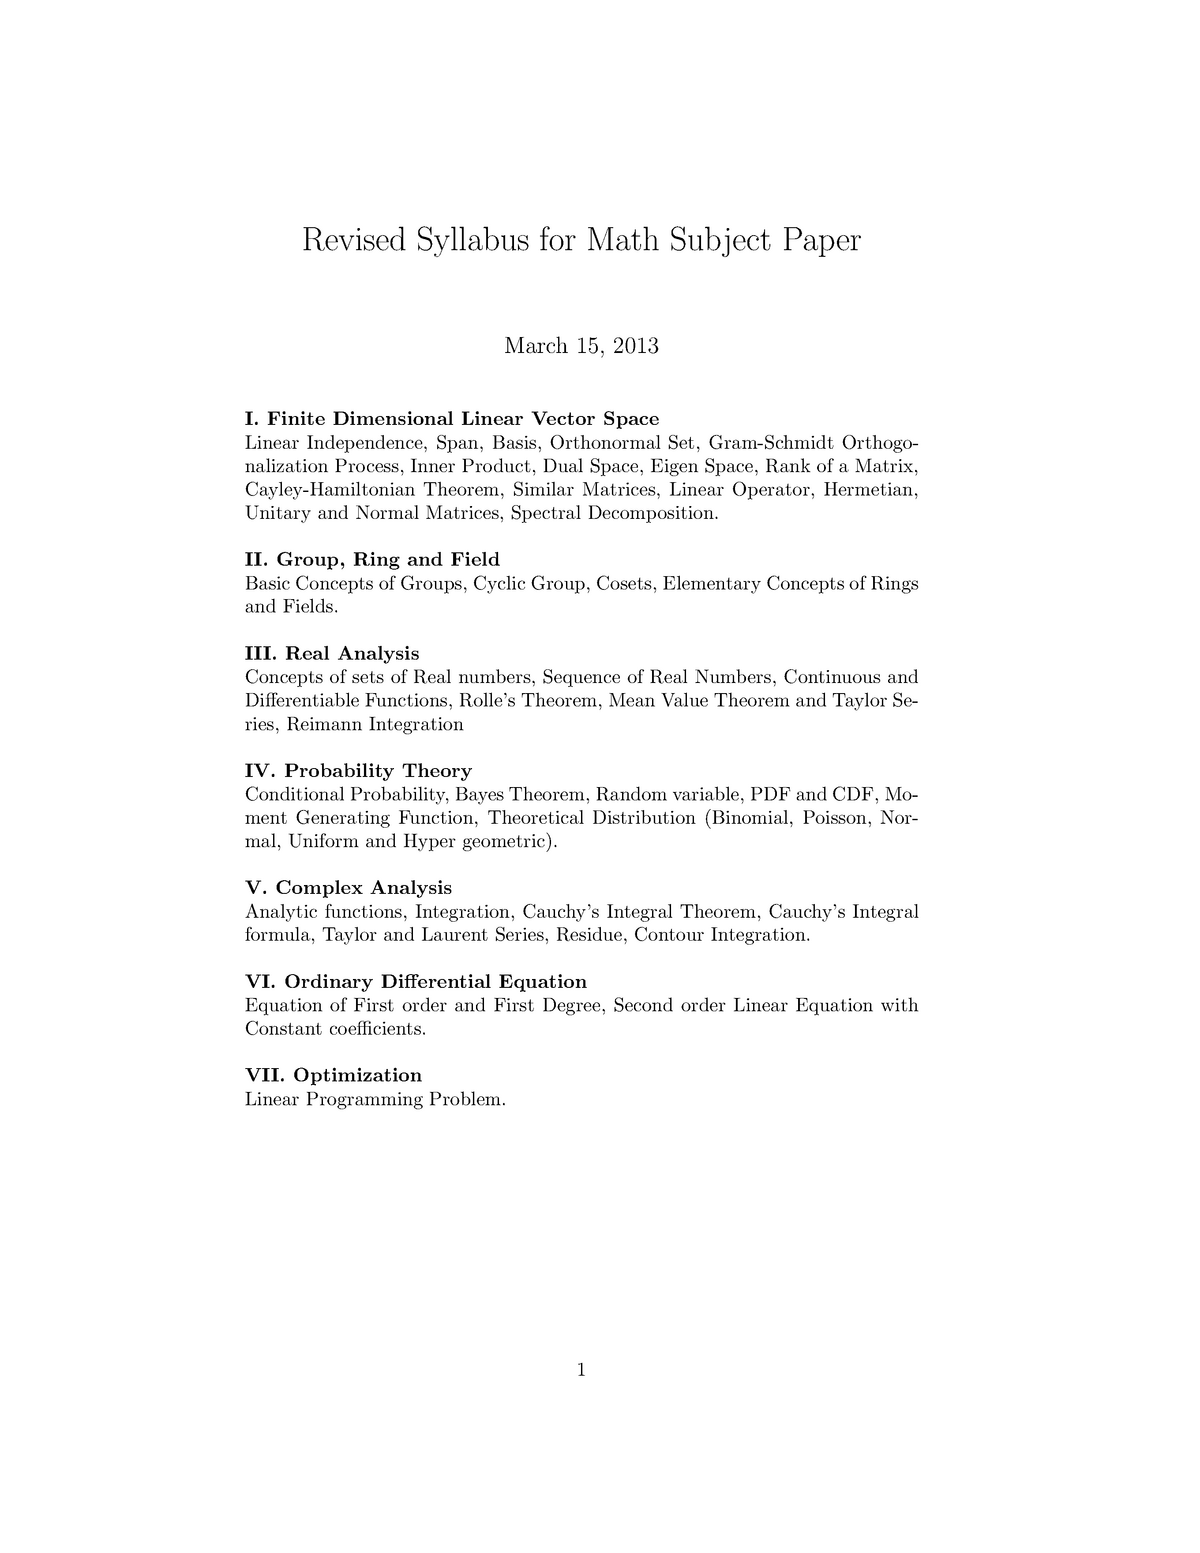 Maths revised syllabus - Mathematics 1 MA101 - StuDocu